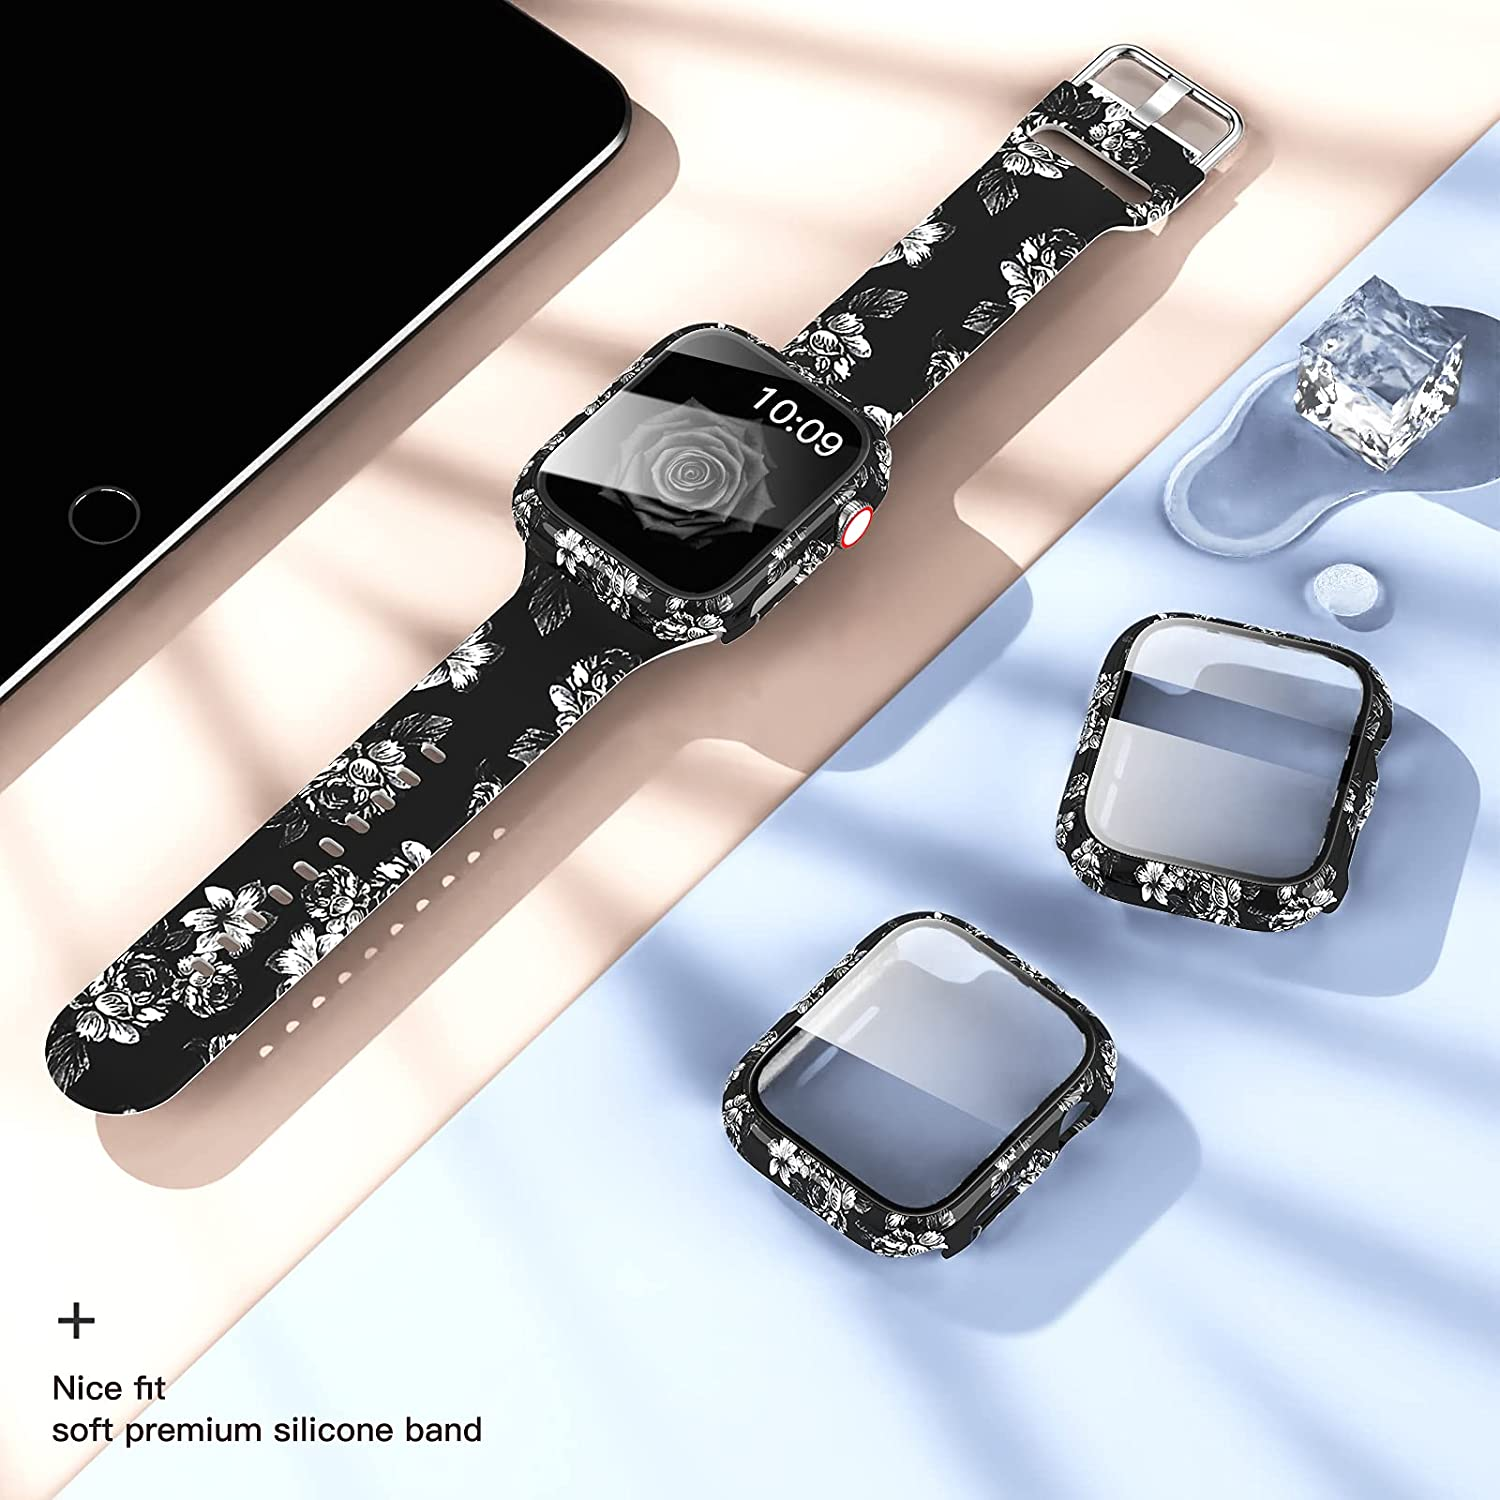 44Mm 40Mm 42Mm 38Mm  Bands+Case For Apple Watch Band With Screen Protector Cover Glass+Silicon Wristband Strap for iwatch 654321